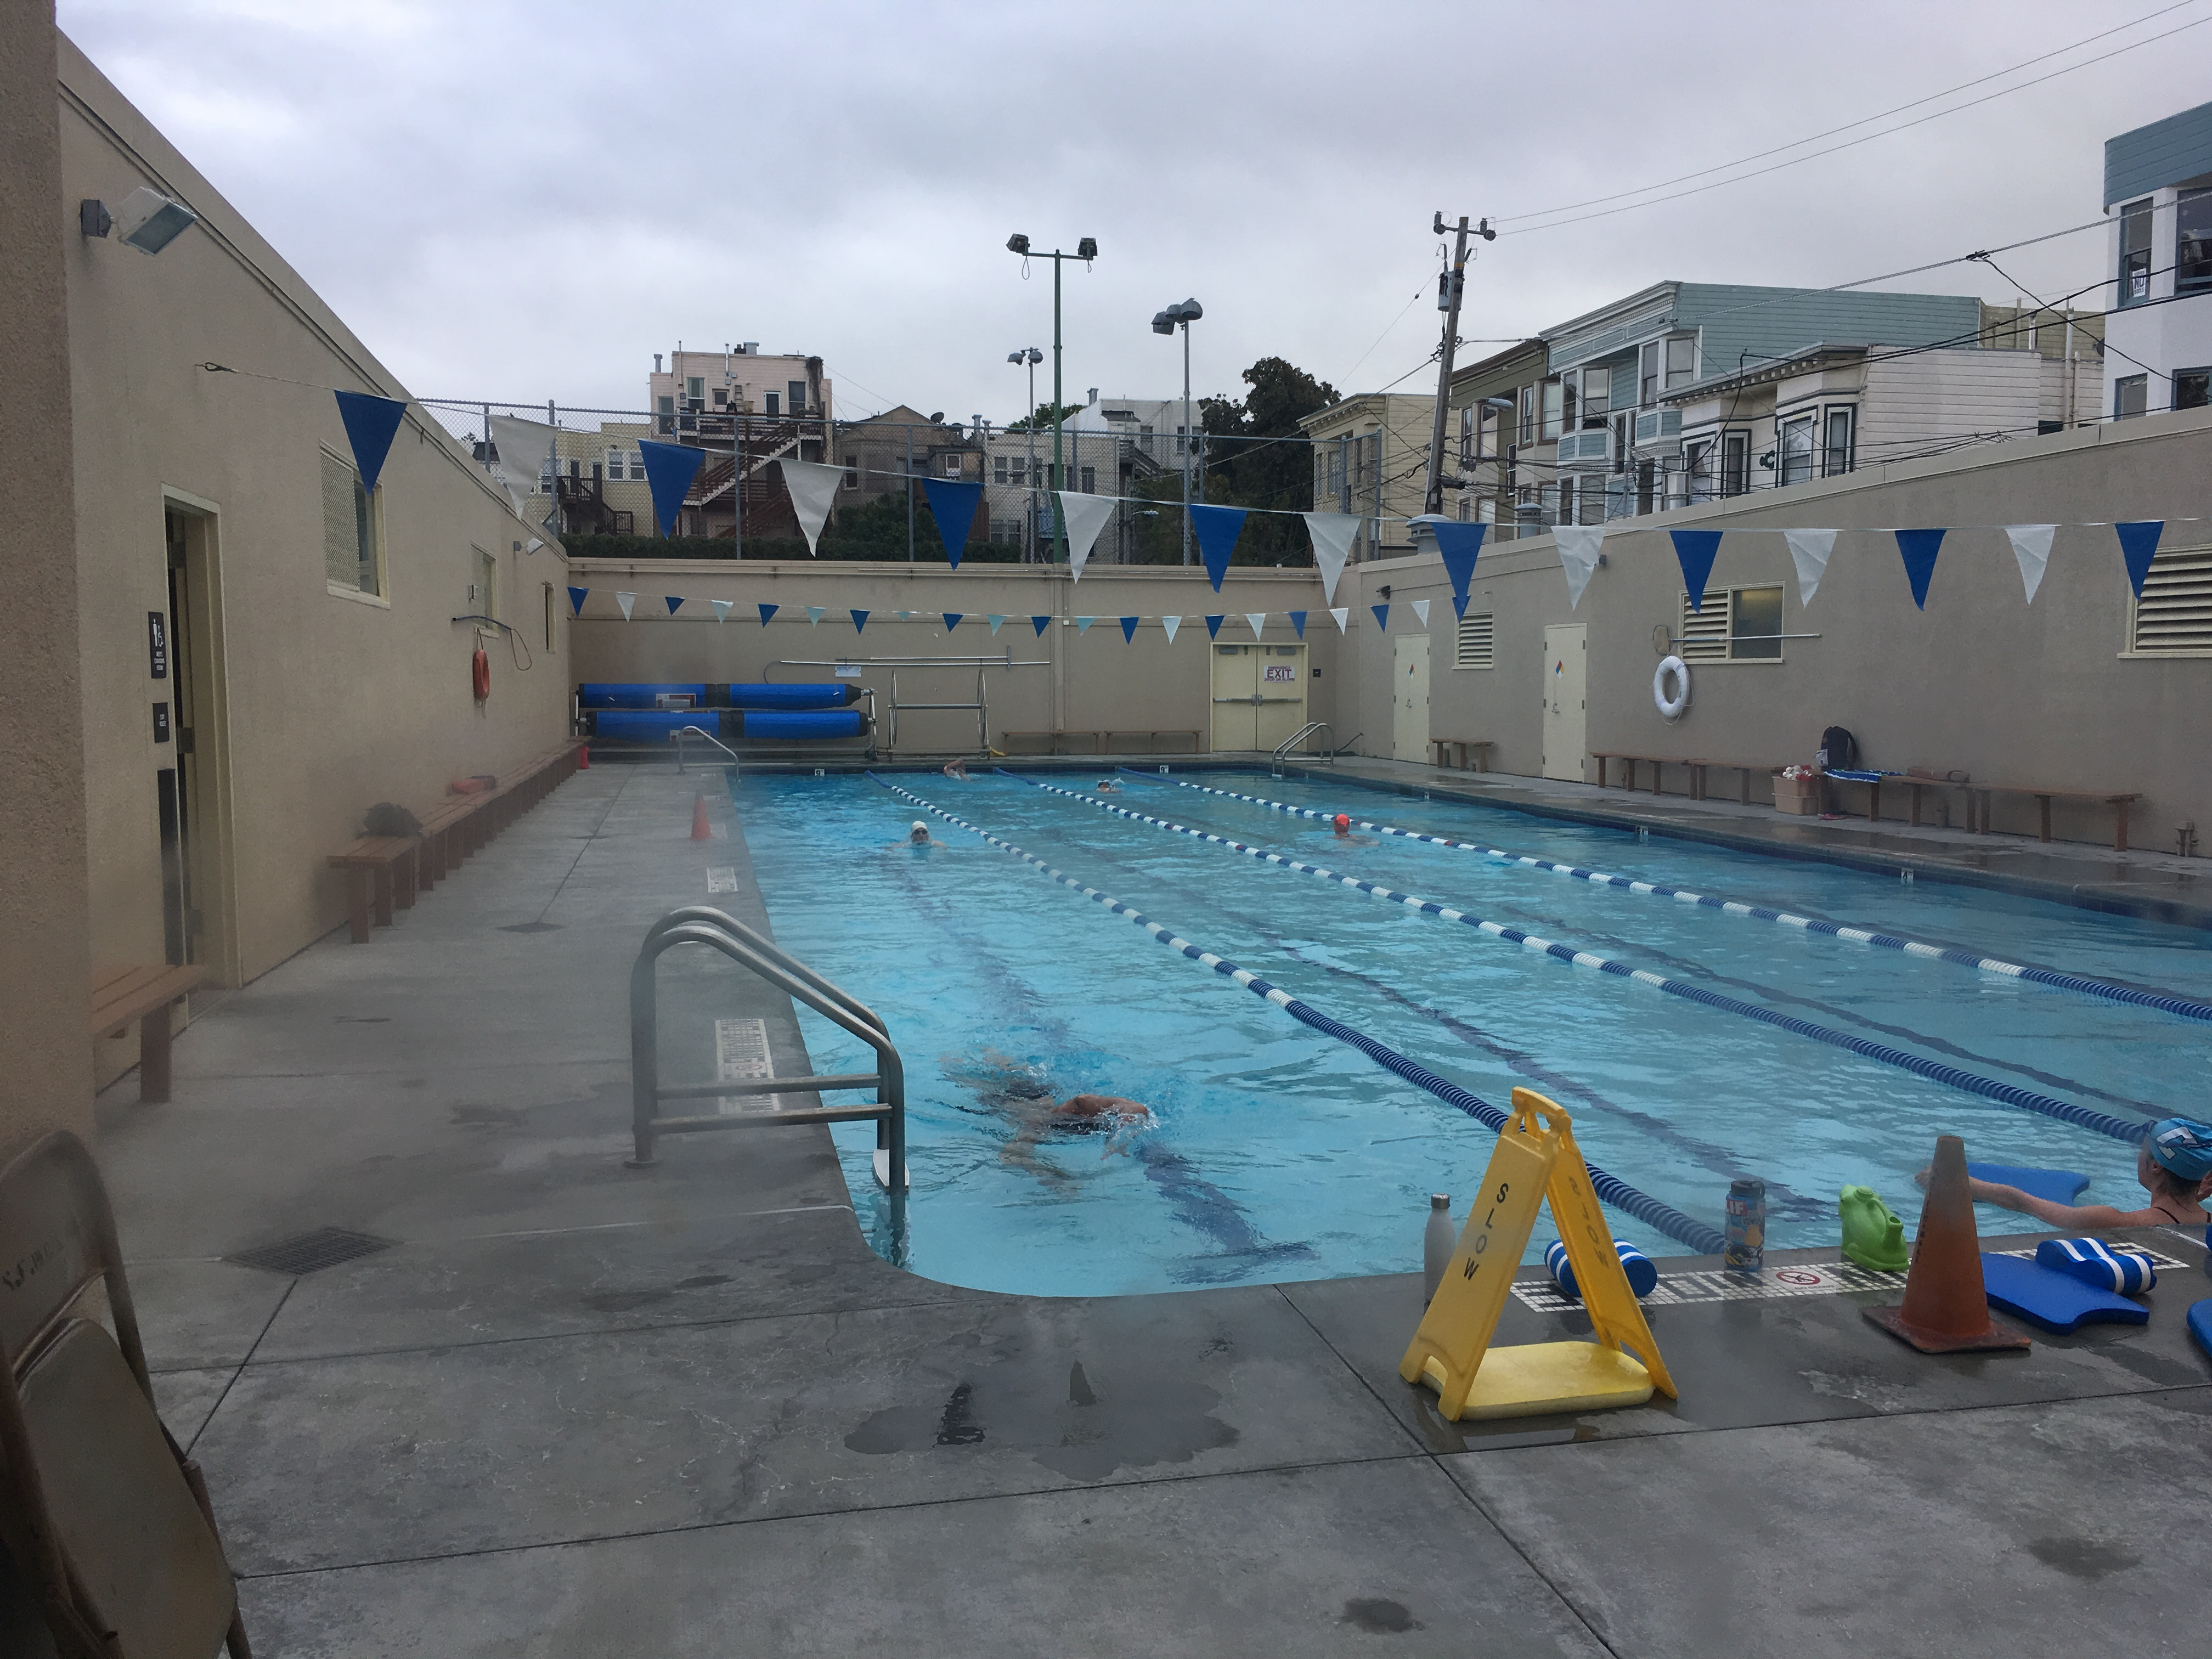 0282 - Mission Pool - San Francisco